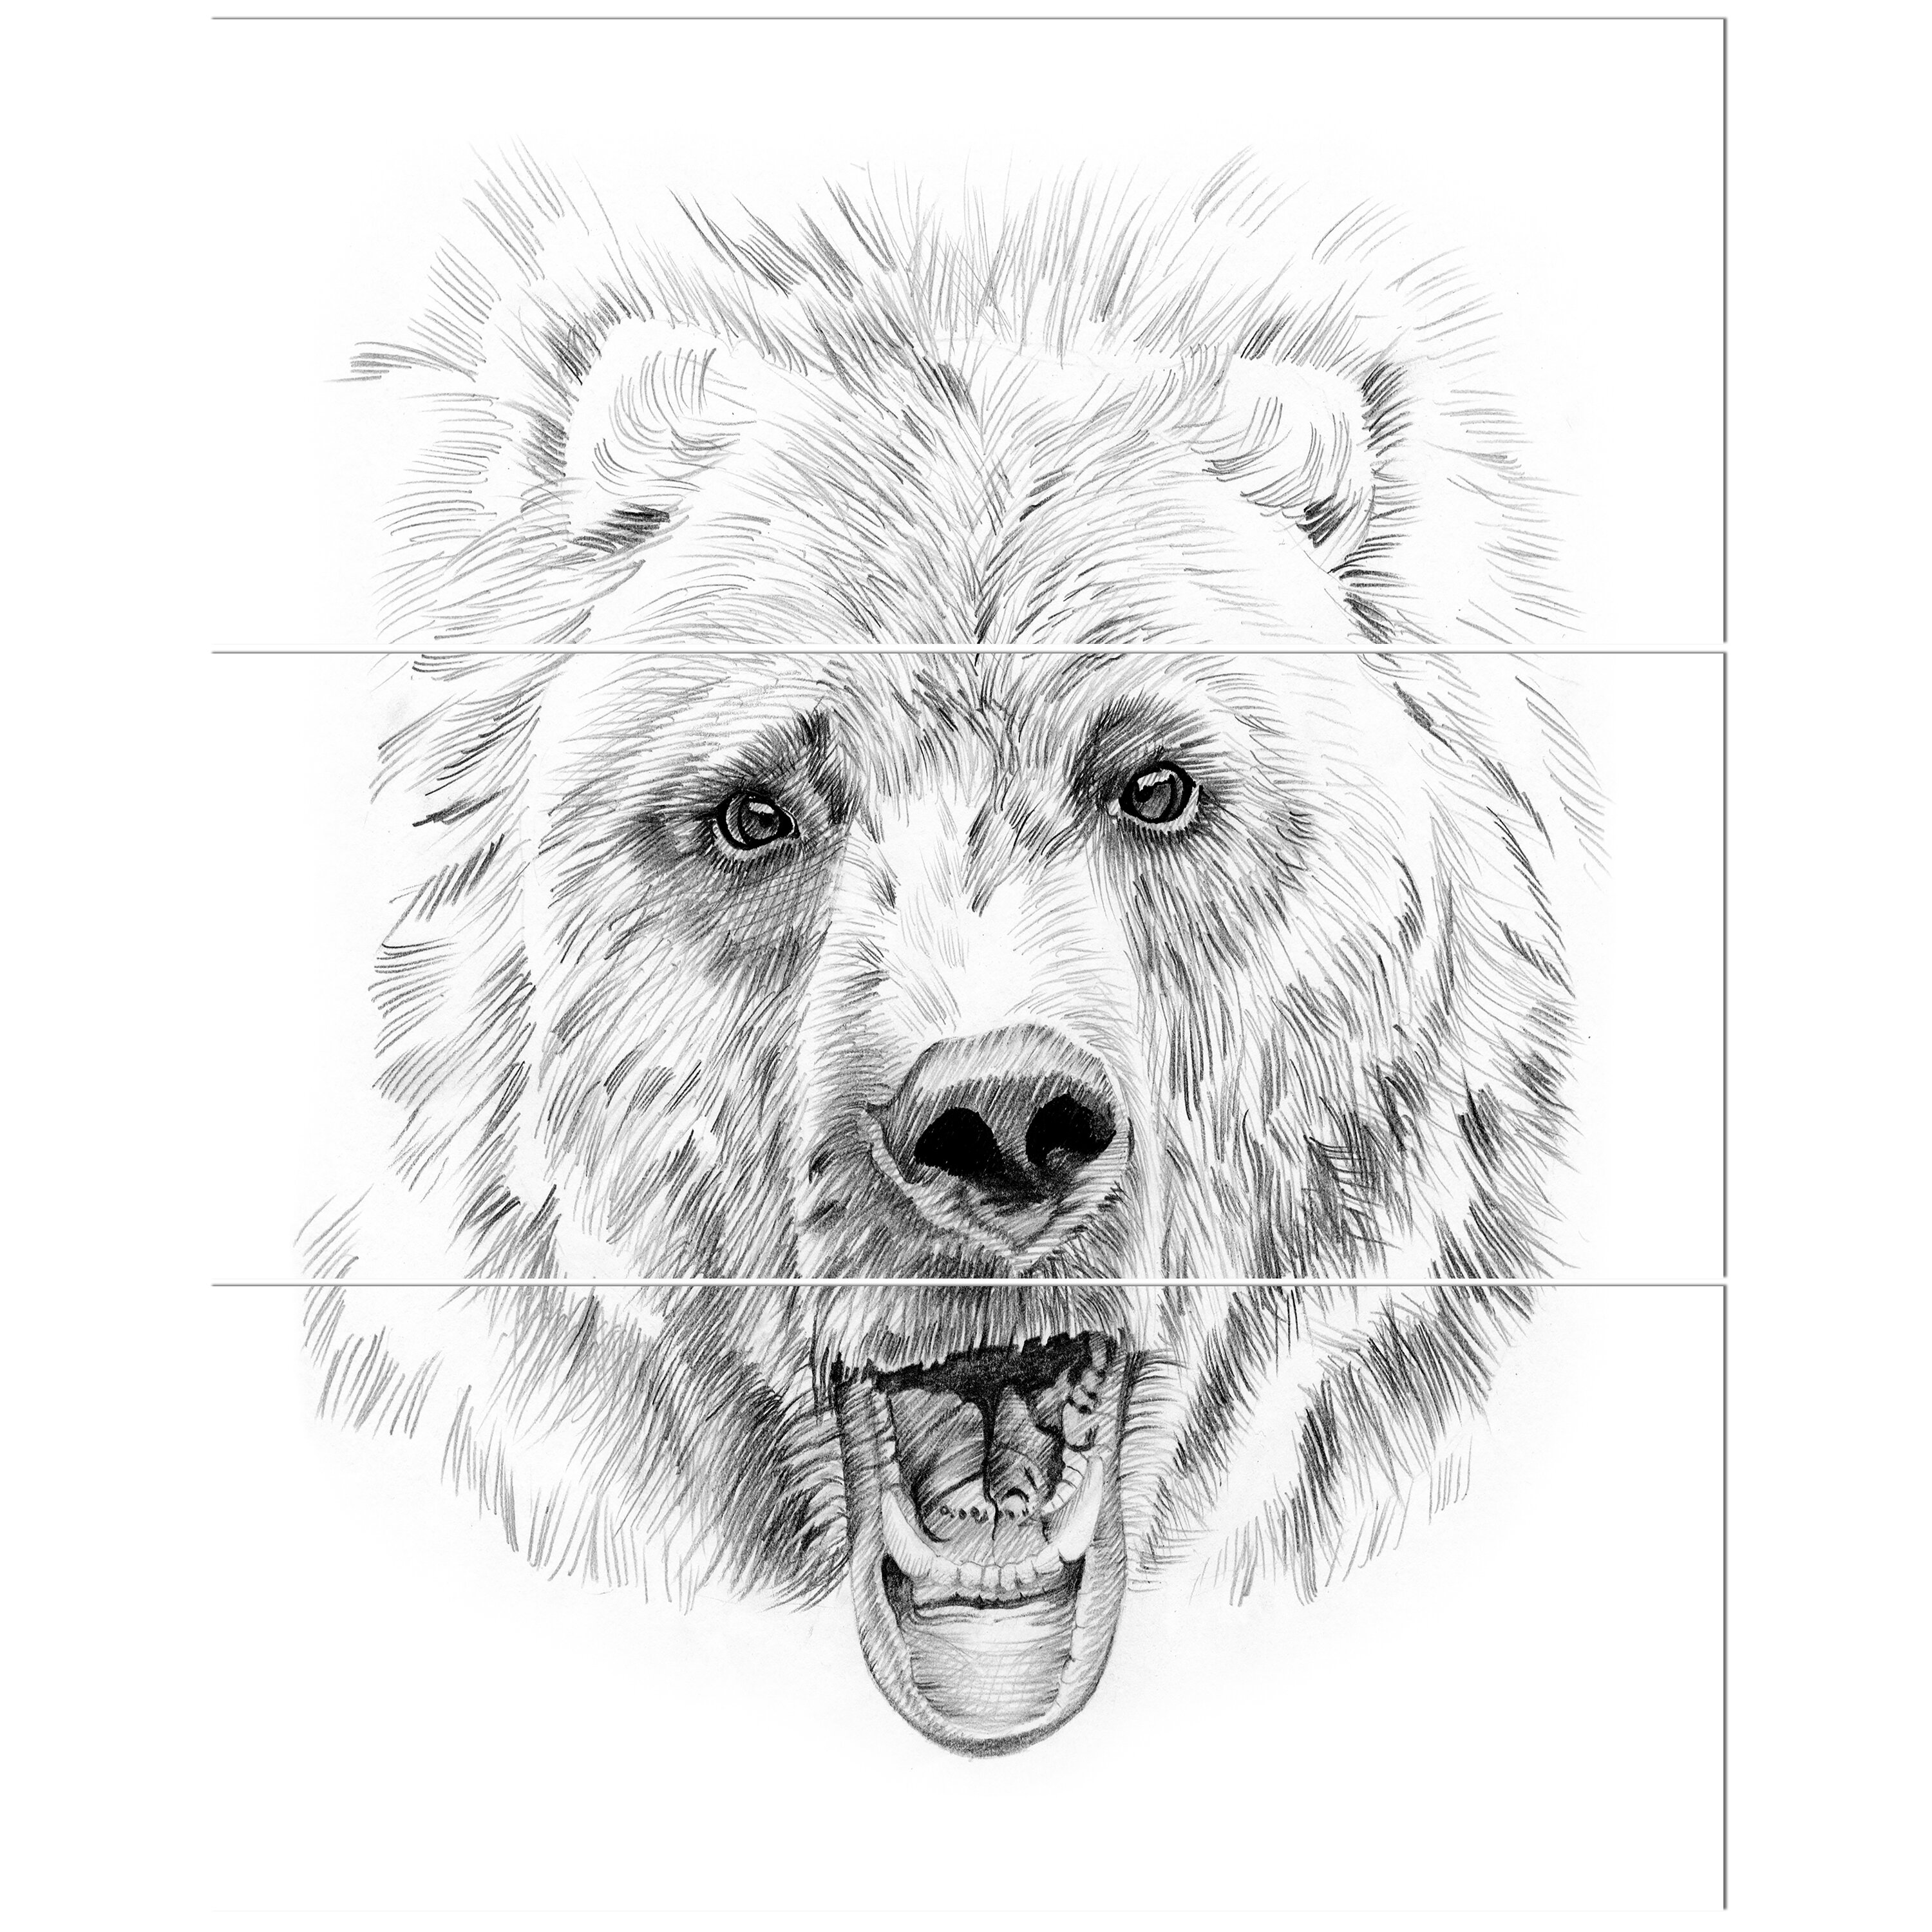 Pencil bear sketch in black and white drawing print multi piece image on canvas